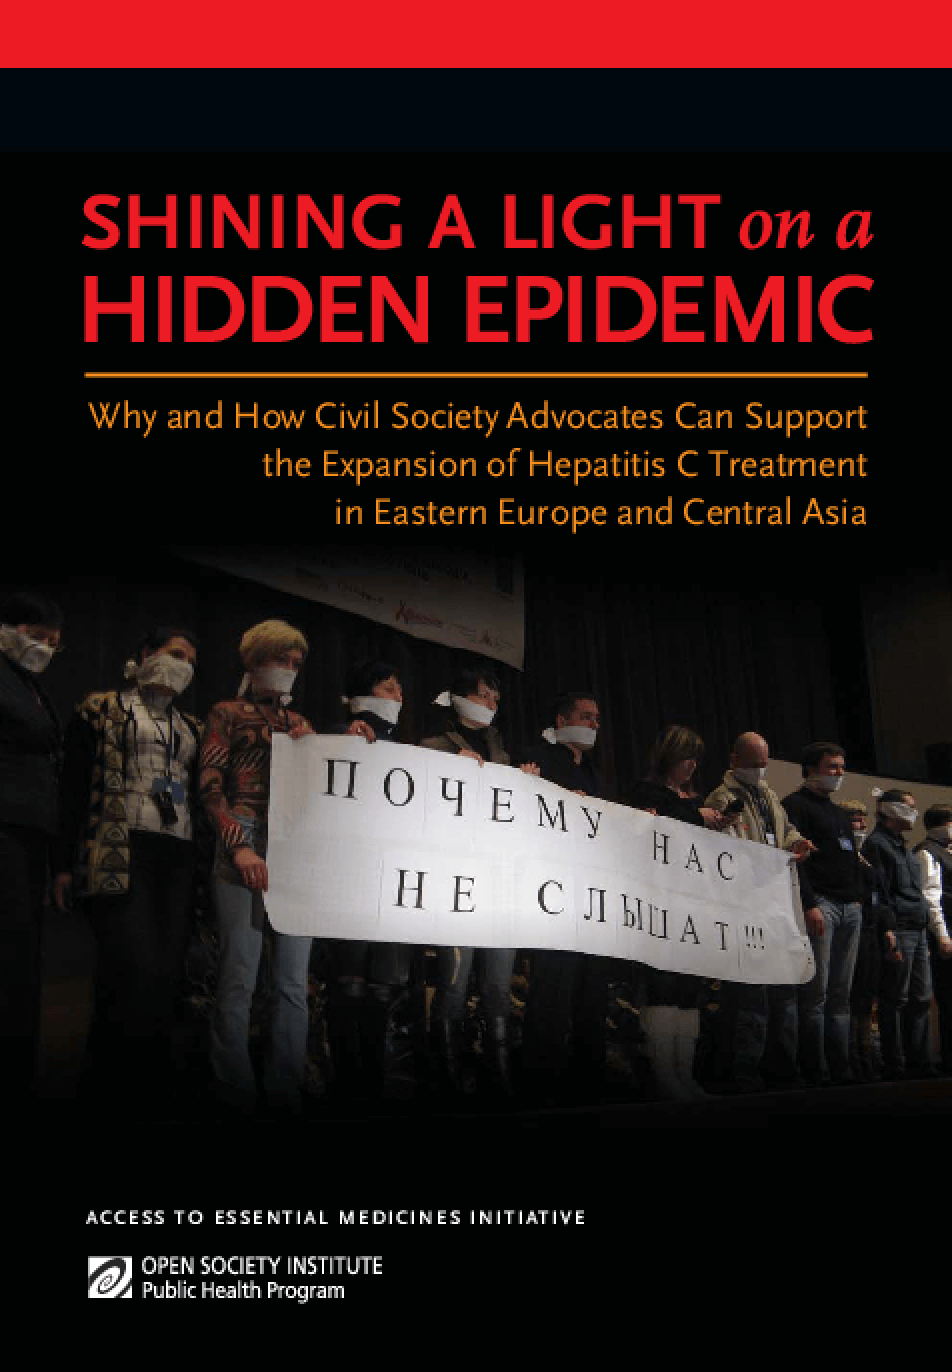 Shining a Light on a Hidden Epidemic: Why and How Advocates Can Support the Expansion of Hepatitis C Treatment in Eastern Europe and Central Asia